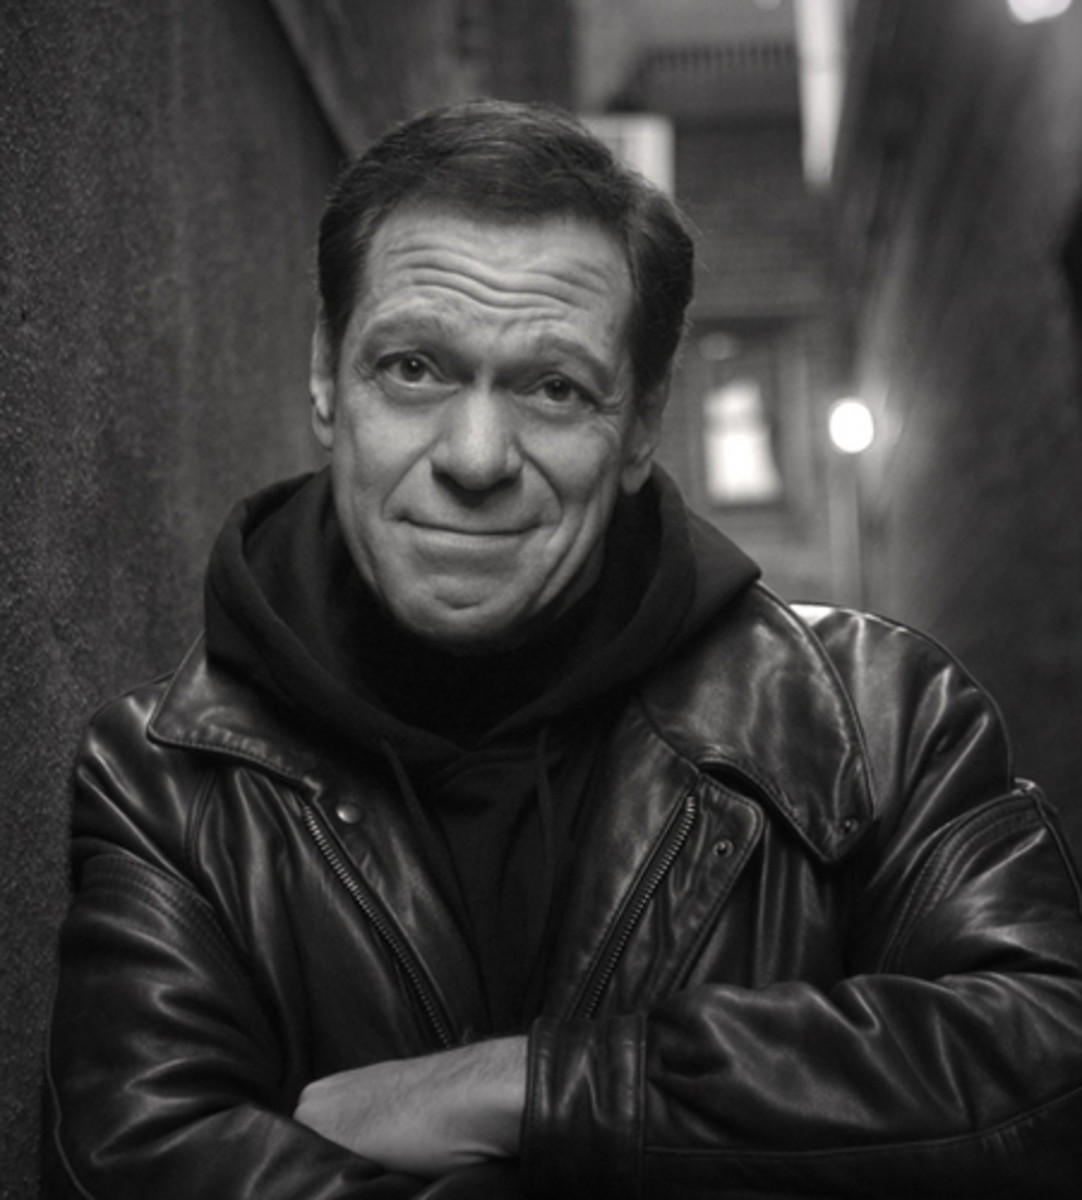 Joe Piscopo's twitter photo.